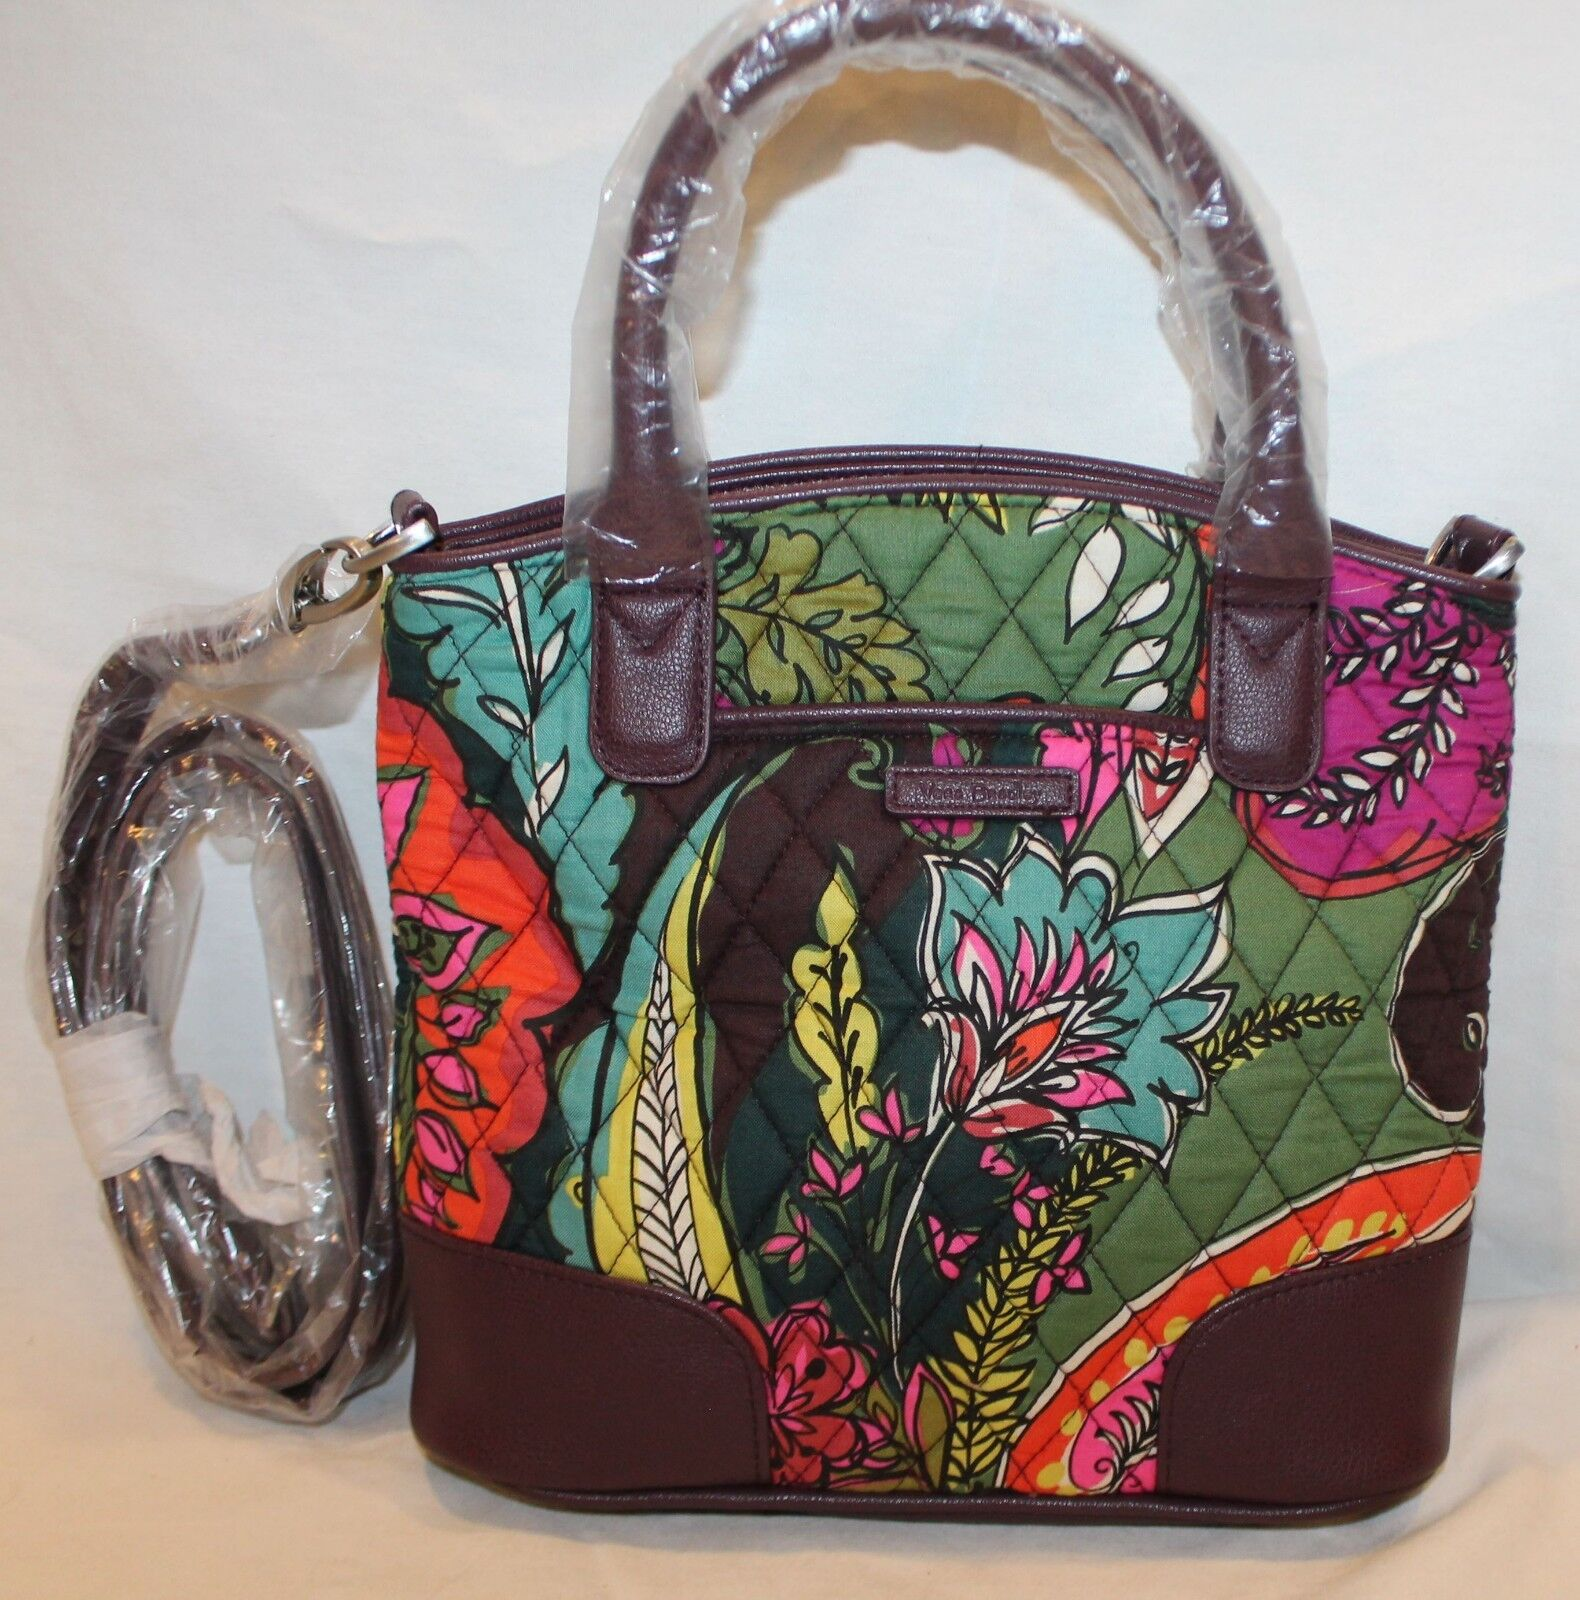 VERA BRADLEY DAY OFF SMALL SATCHEL CROSSBODY HANDBAG MULTIPL